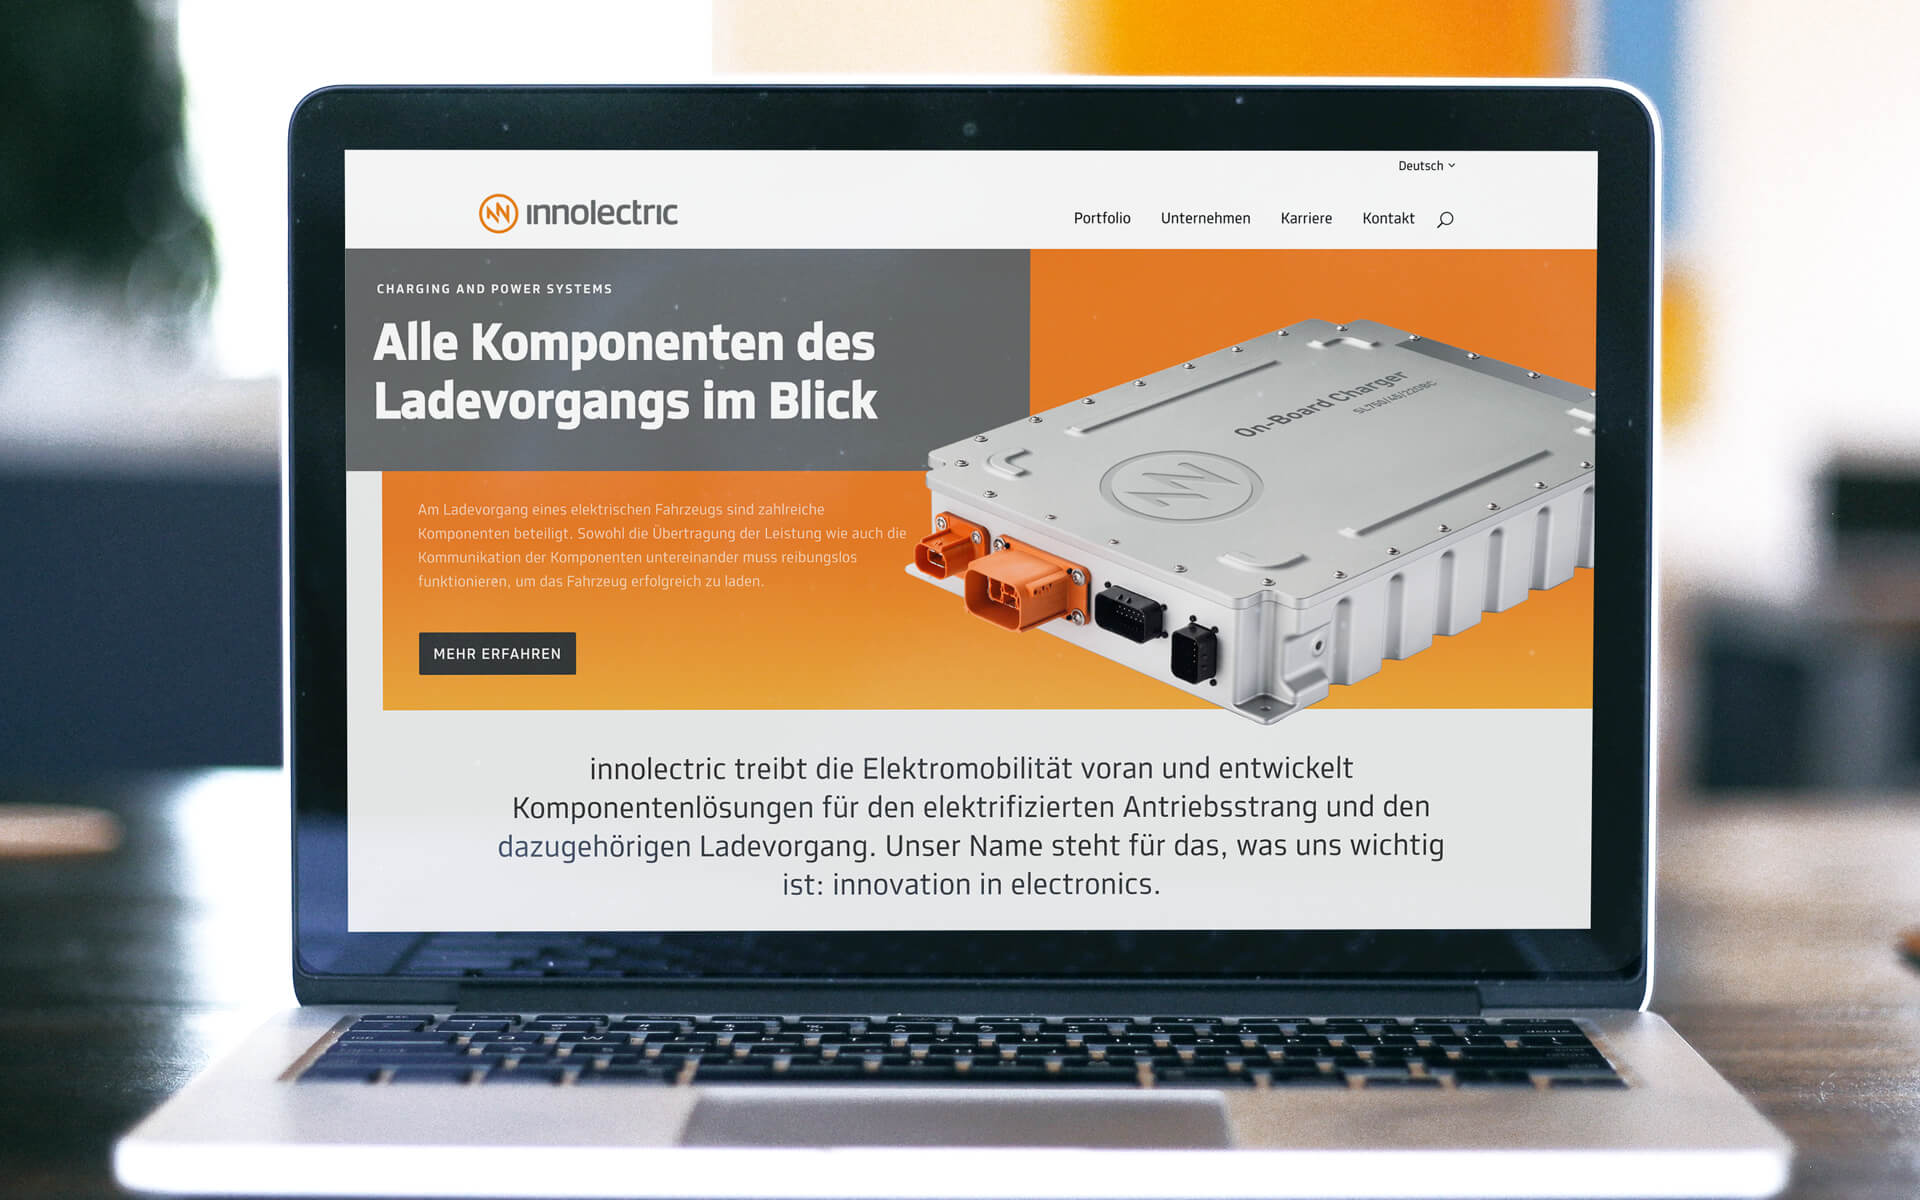 innolectric Corporate Design, Website, Startseite